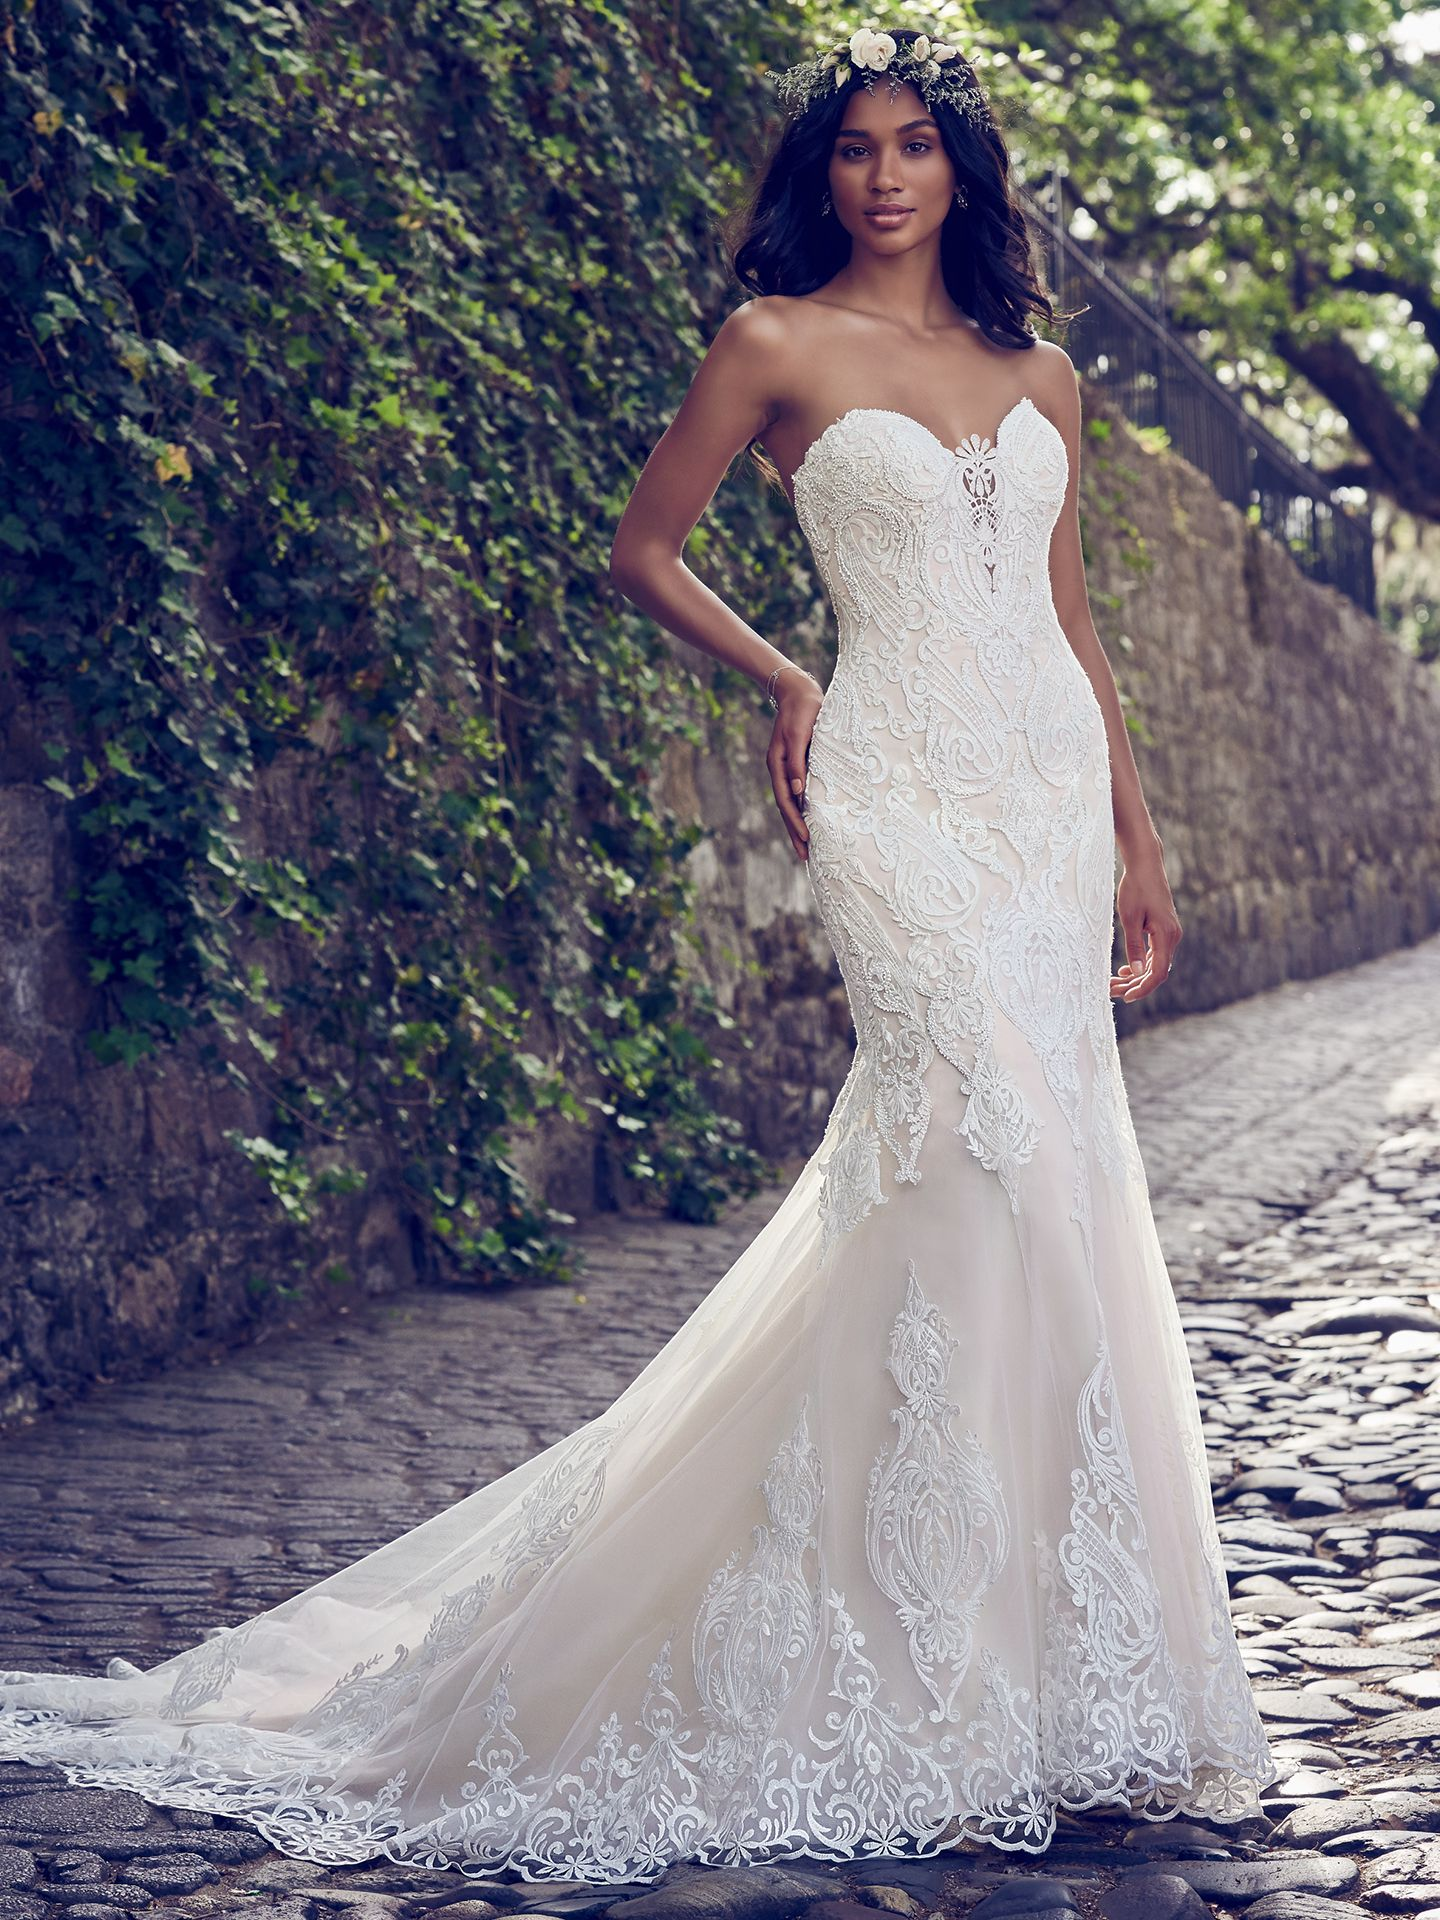 Quick Delivery Wedding Dresses For Your Uping Autumn By Maggie Sottero: Simple Fall Themed Wedding Dresses At Websimilar.org